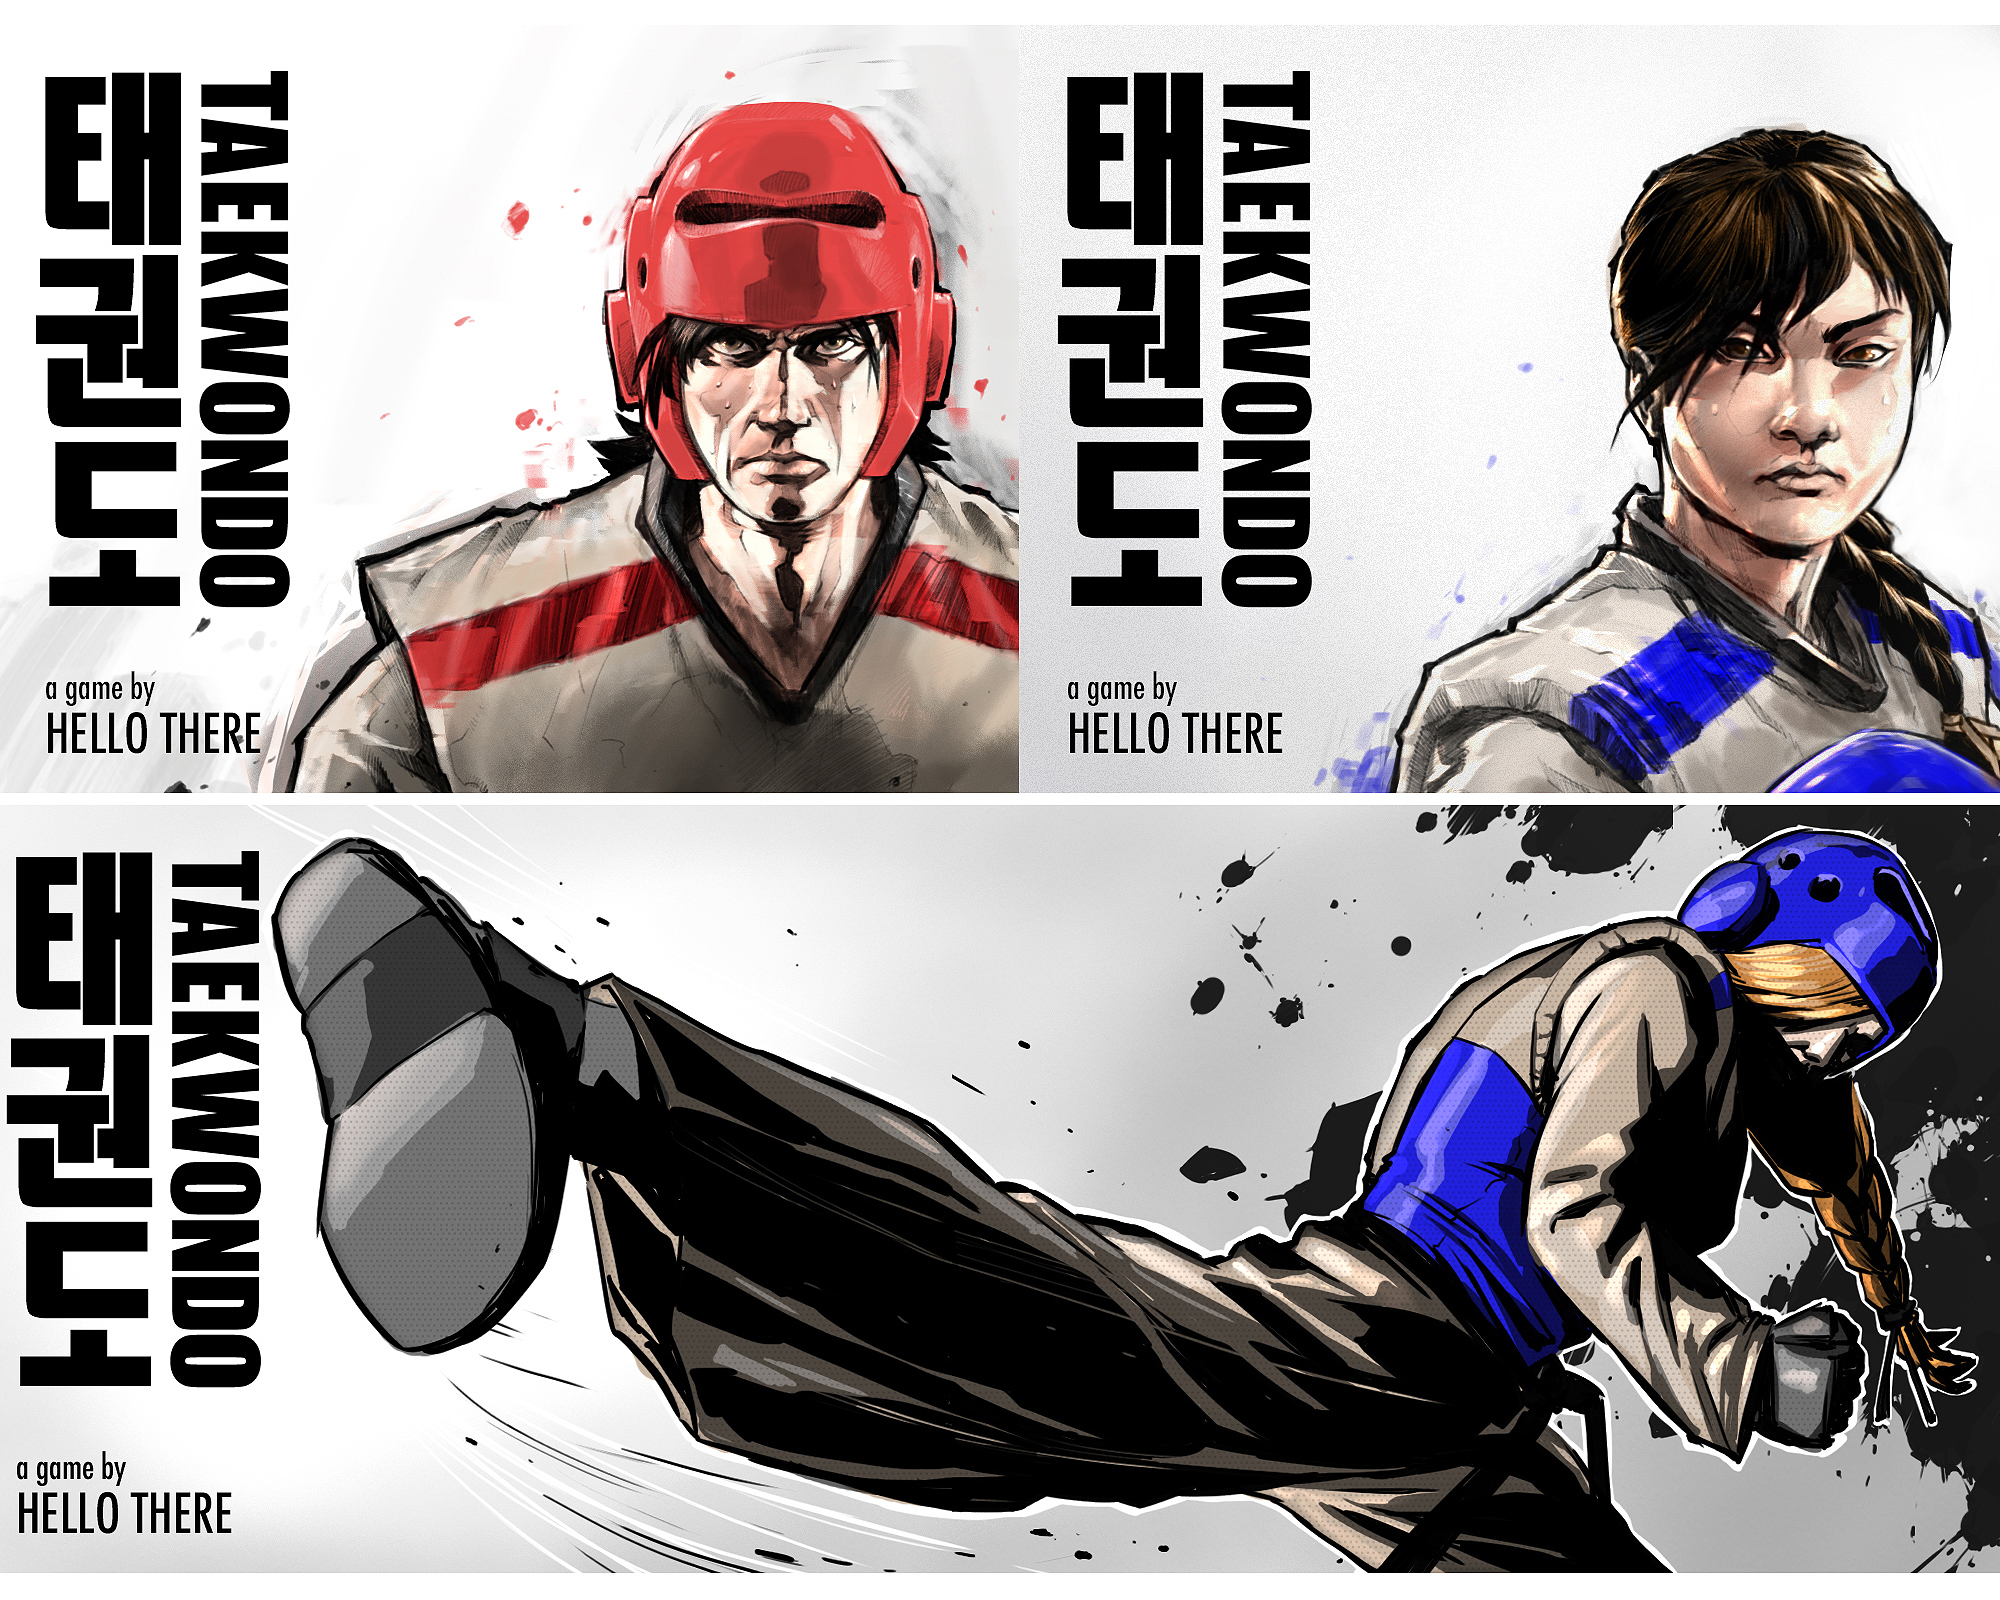 The Taekwondo Game, Global Tournament, promotional work for the mobile Taekwondo game